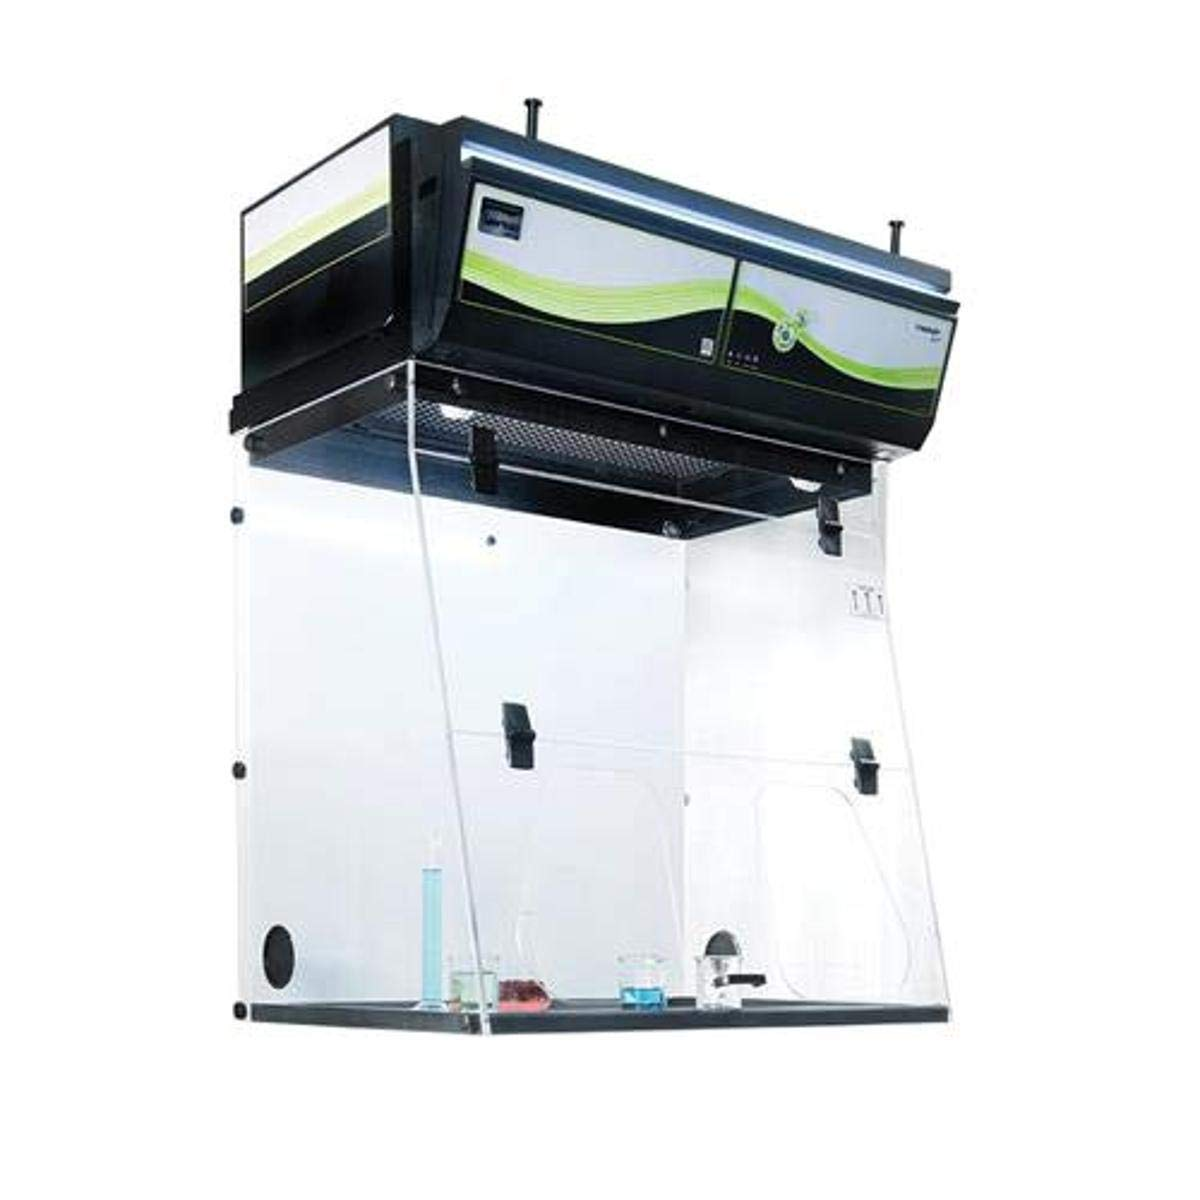 Erlab SMART483RT Our Popularity shop OFFers the best service Resin Work Surface Smart 483 for Fume Ductless